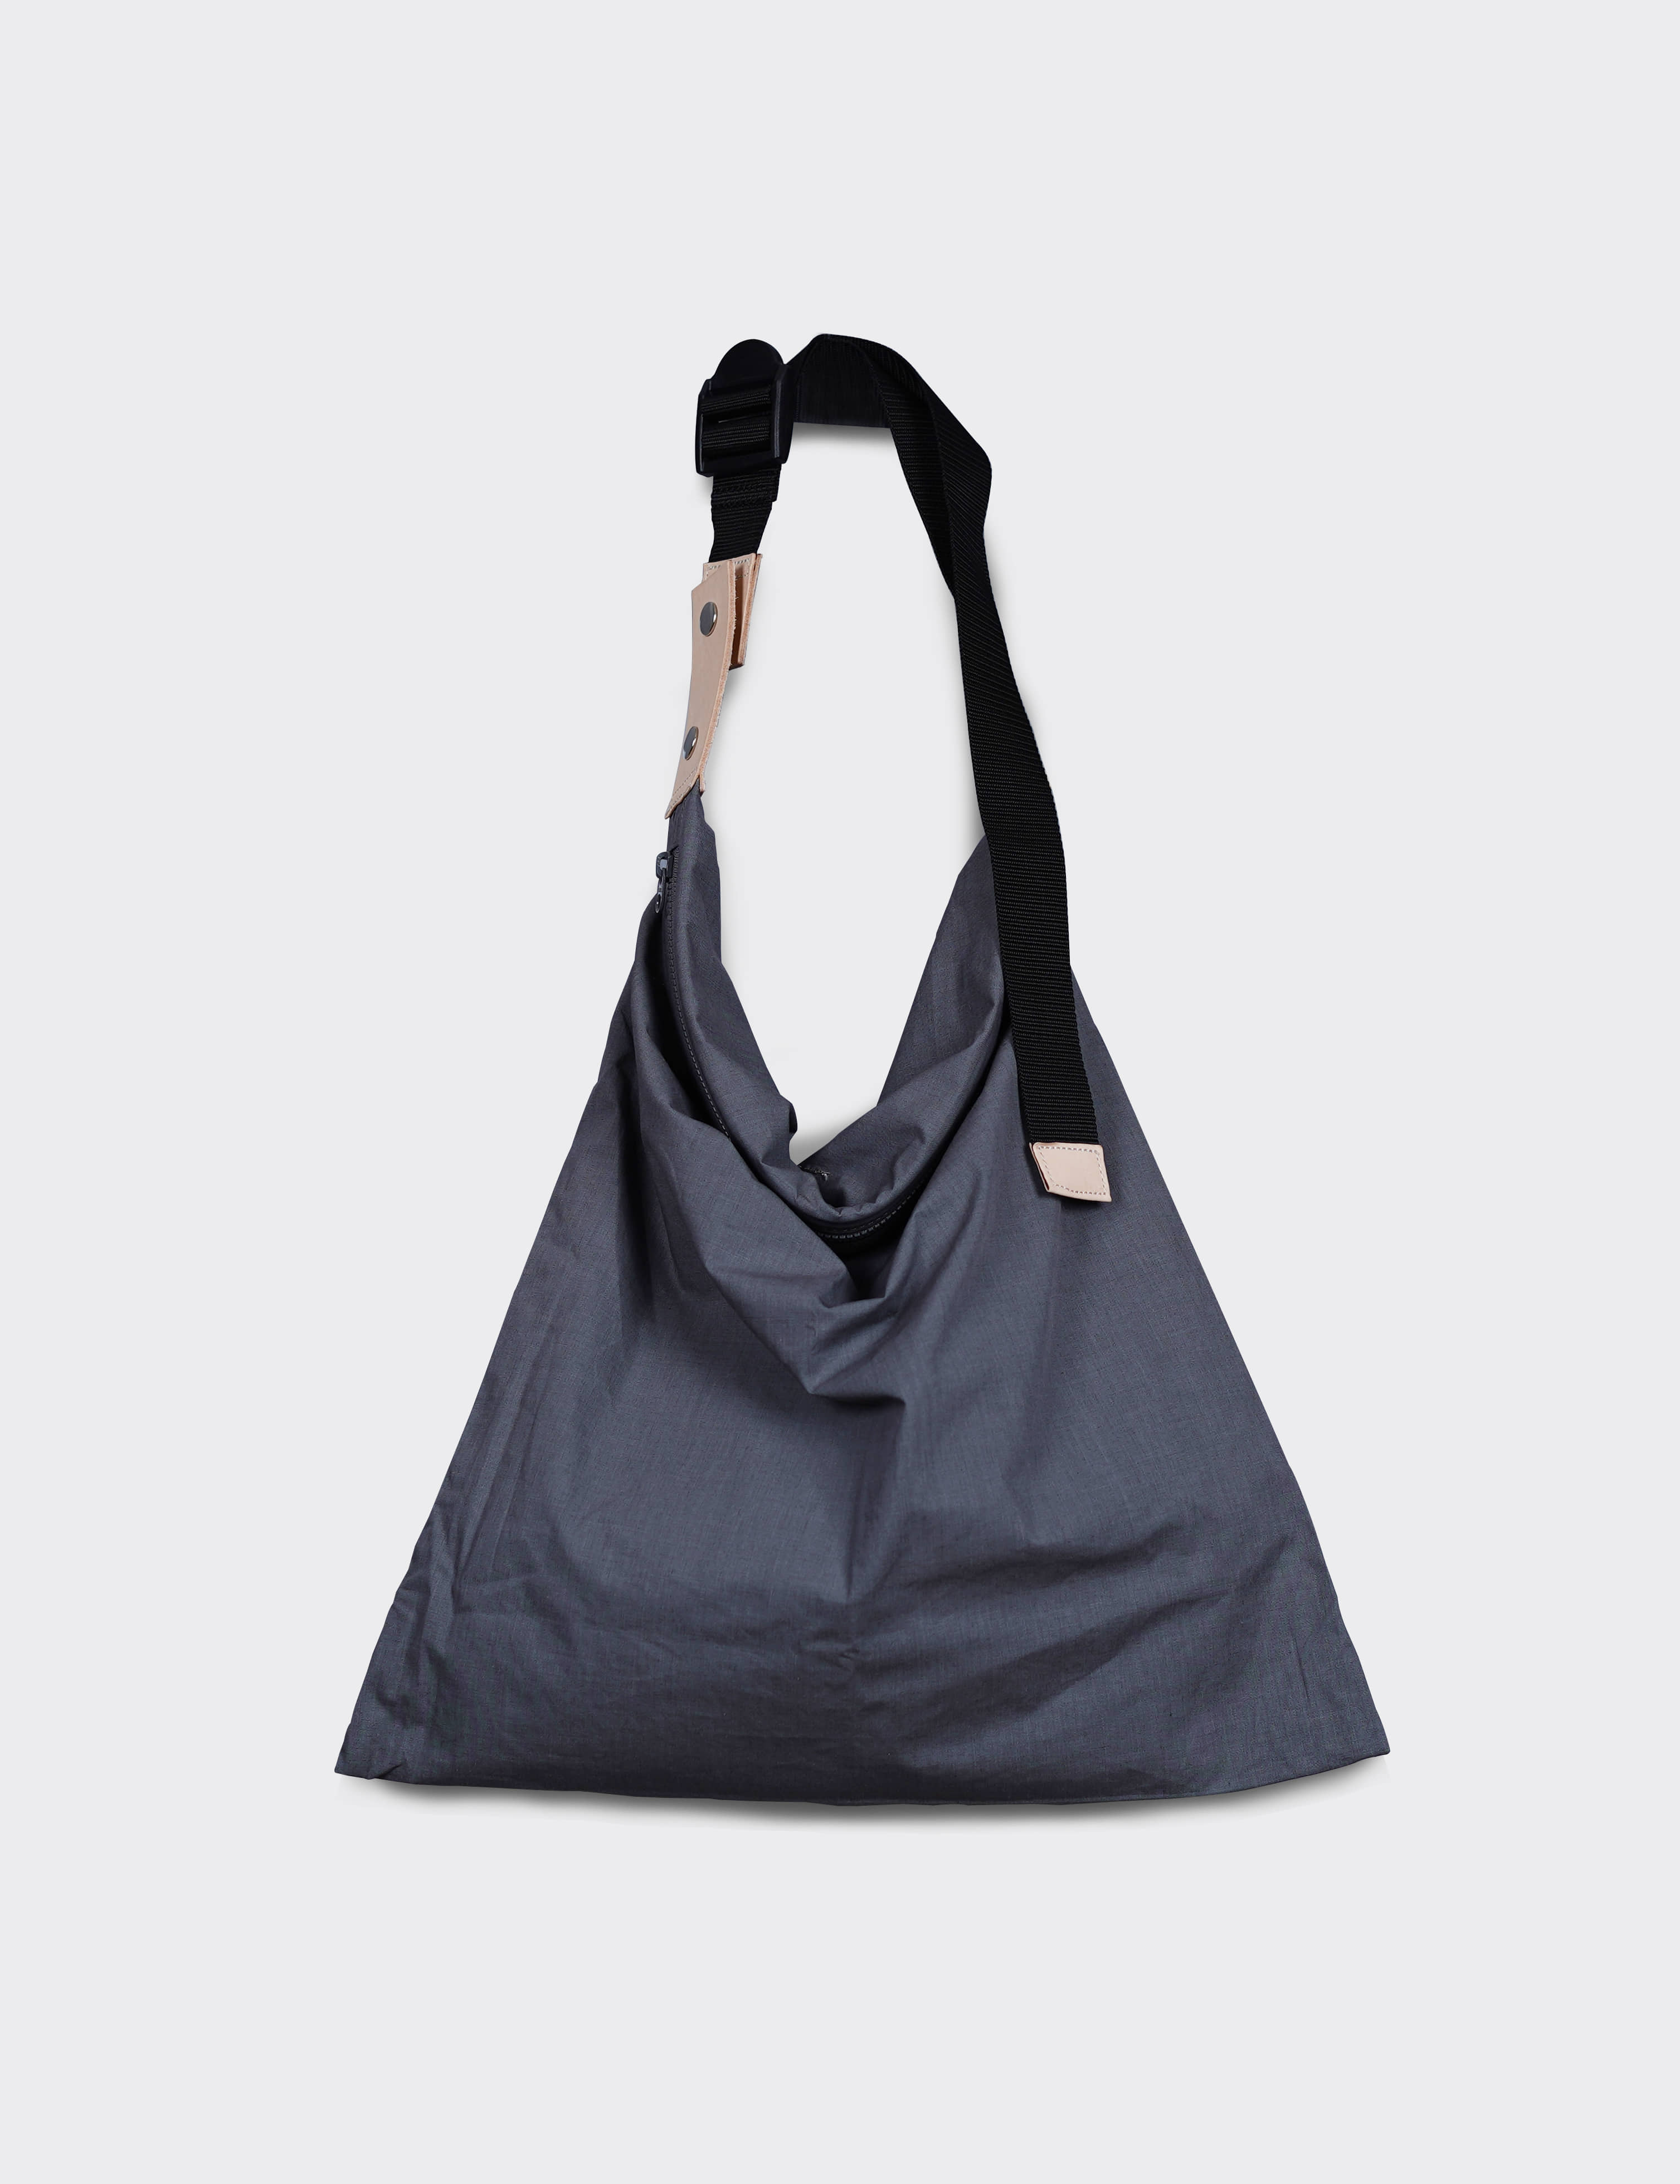 WRAP BAG - S (GRAY)